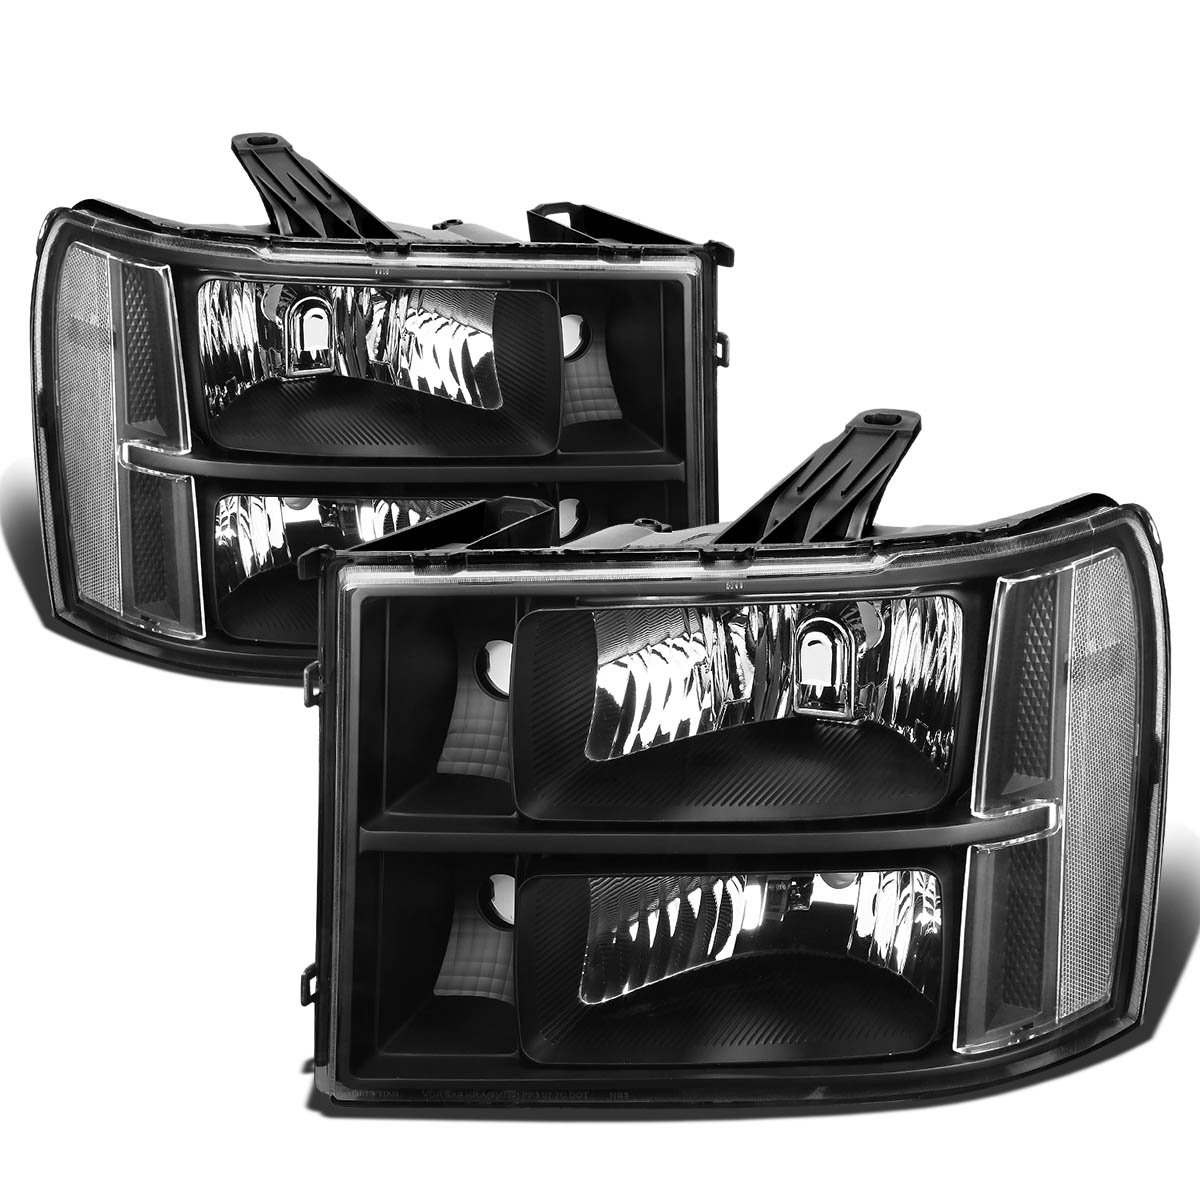 Replacement for GMC Sierra GMT 900 Pair of Black Housing Clear Corner Headlight Replacement